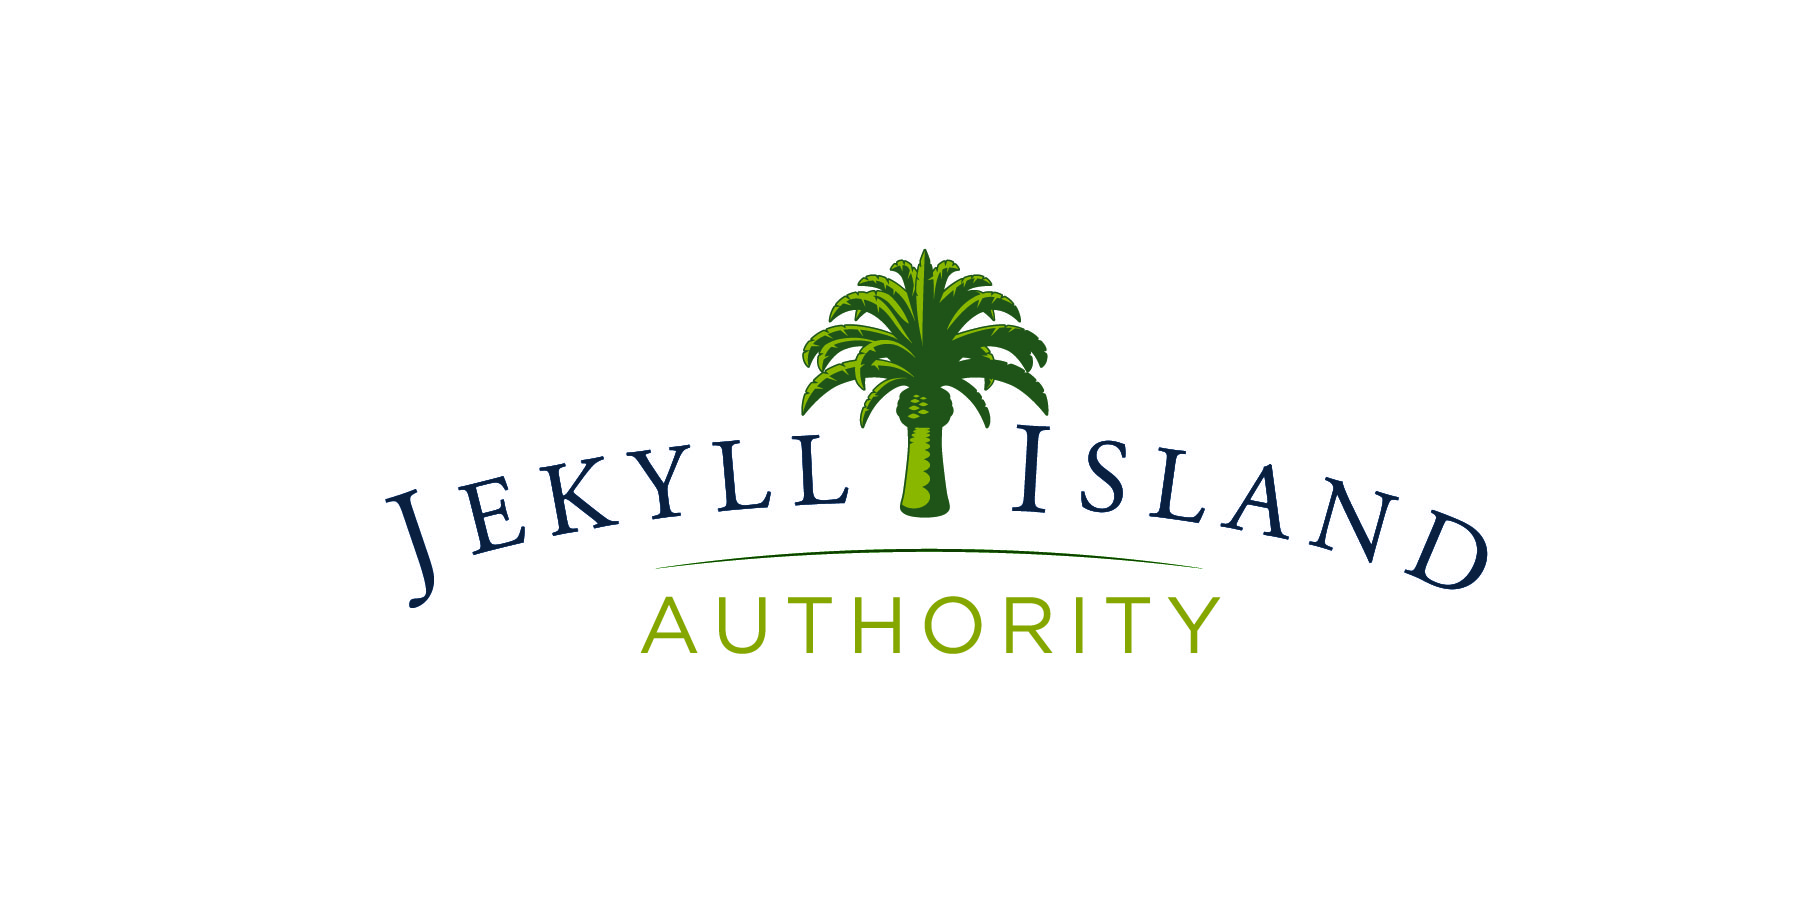 Jekyll Island Authority board minutes